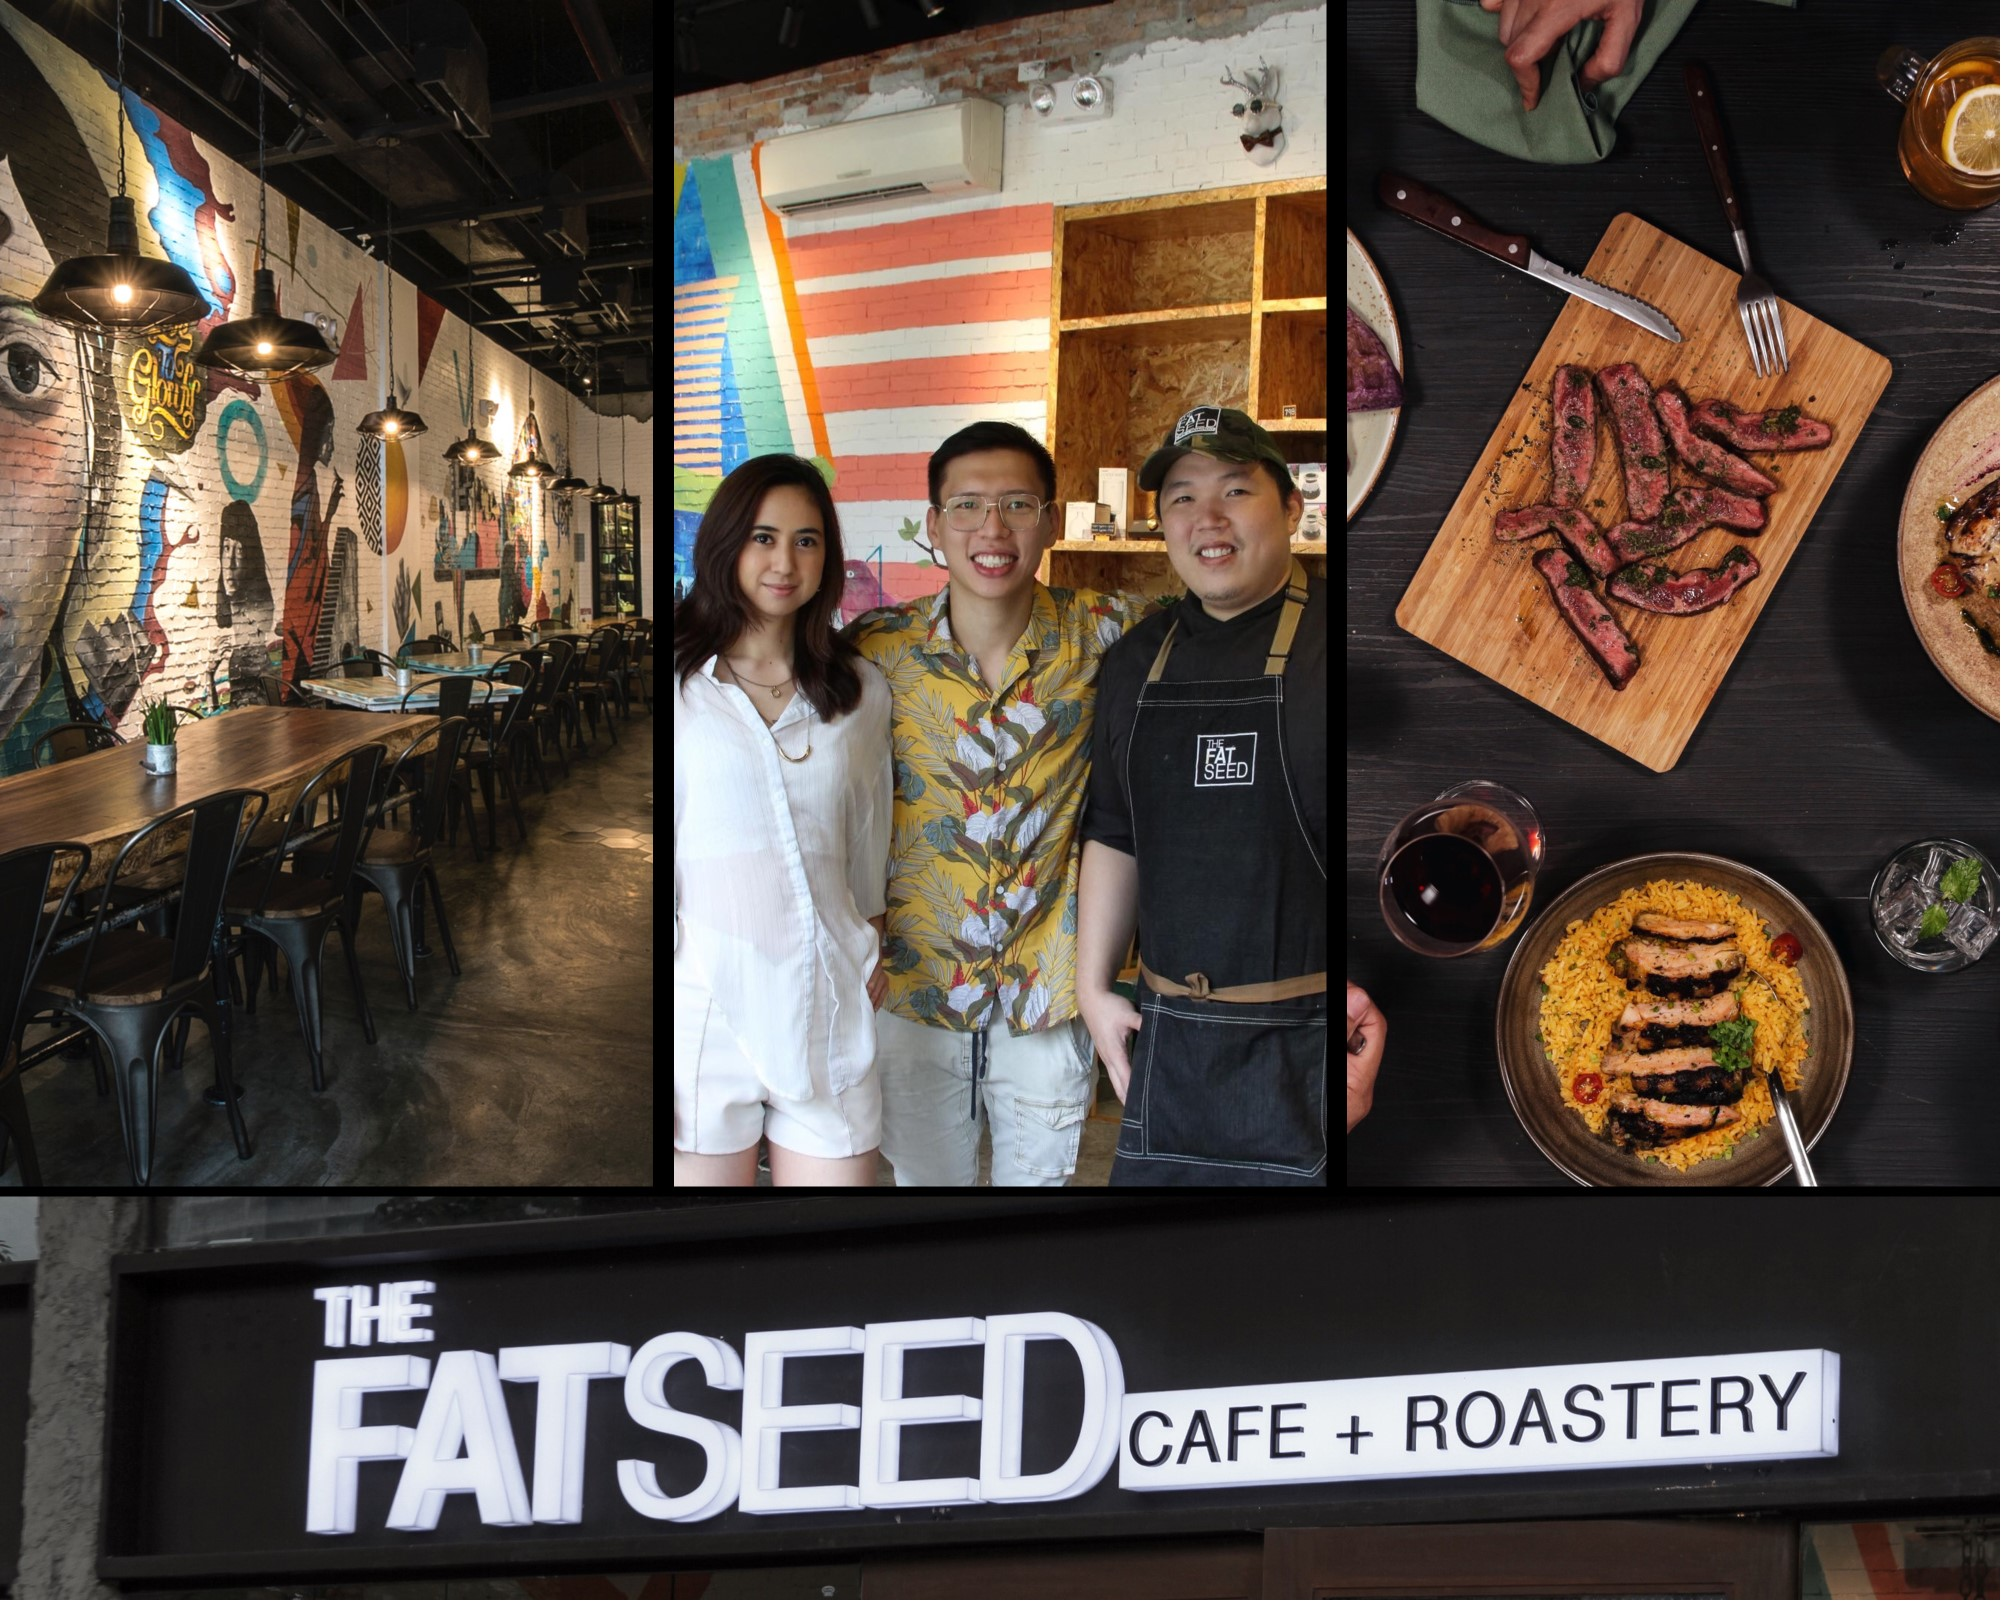 Meet The Coffee Prince: Bryant Dee, The Man Behind Fat Seed Cafe+Roastery